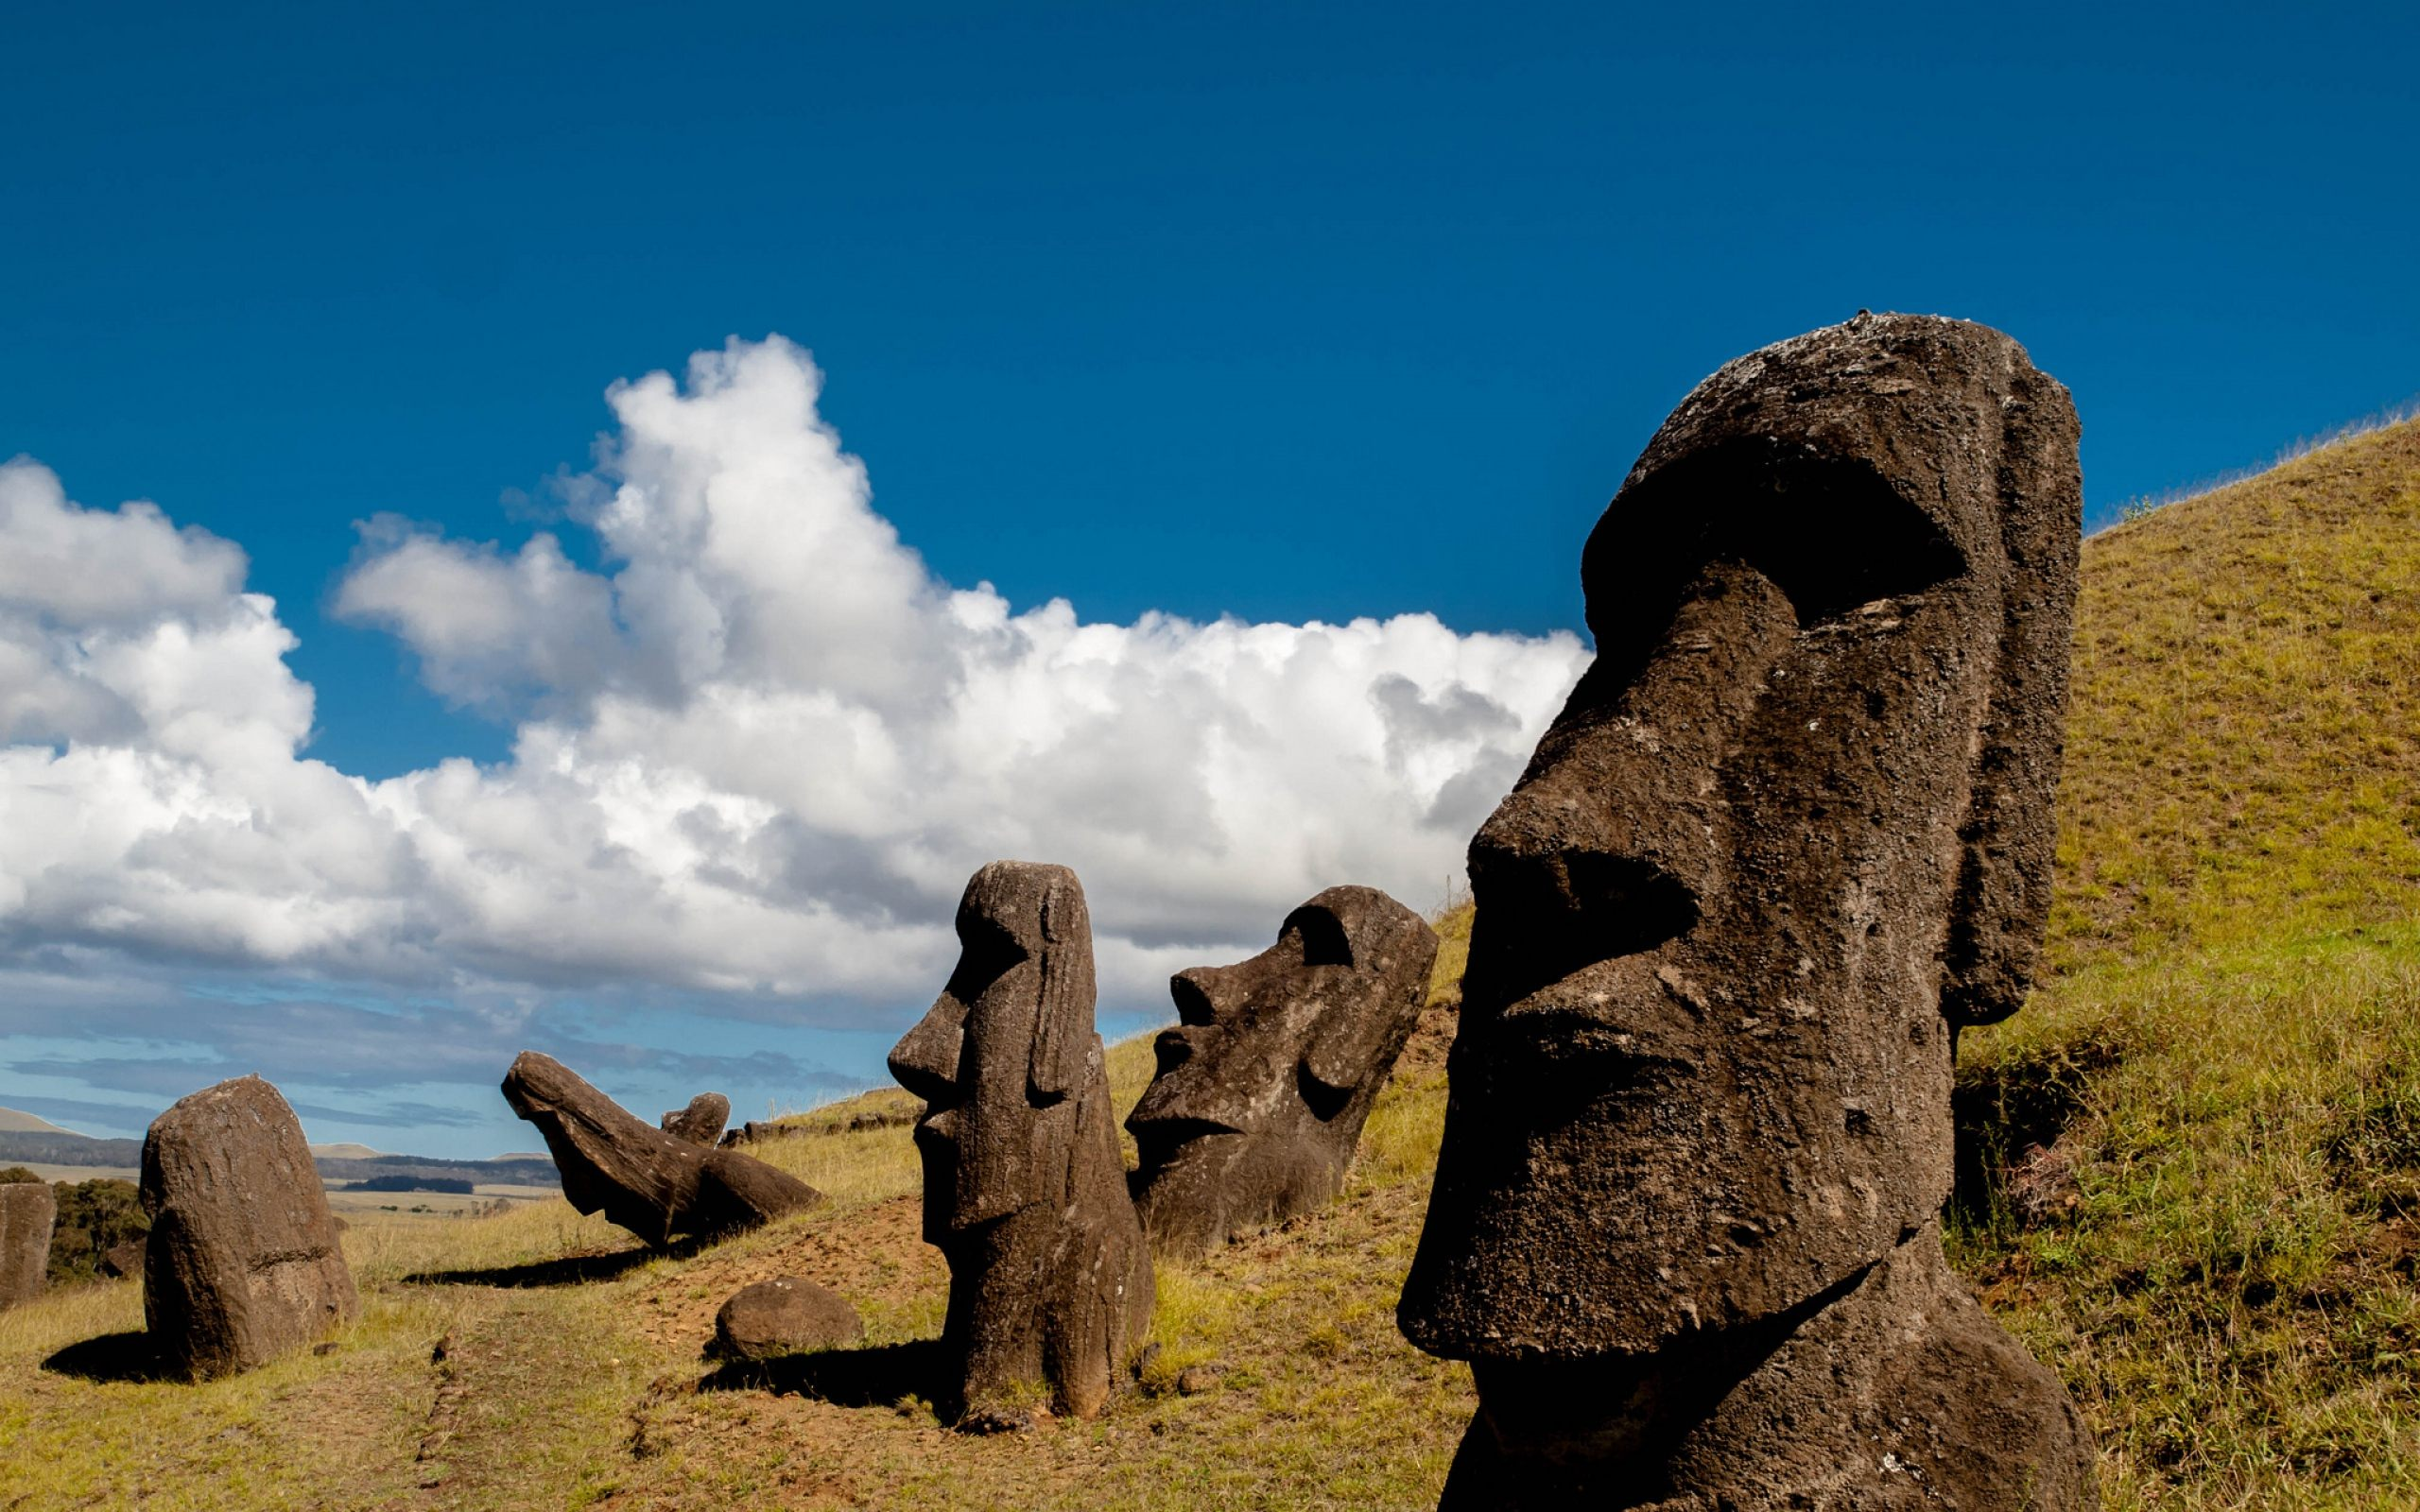 Easter Island Statues HD Wallpaper For Desktop amp Mobile 2560x1600